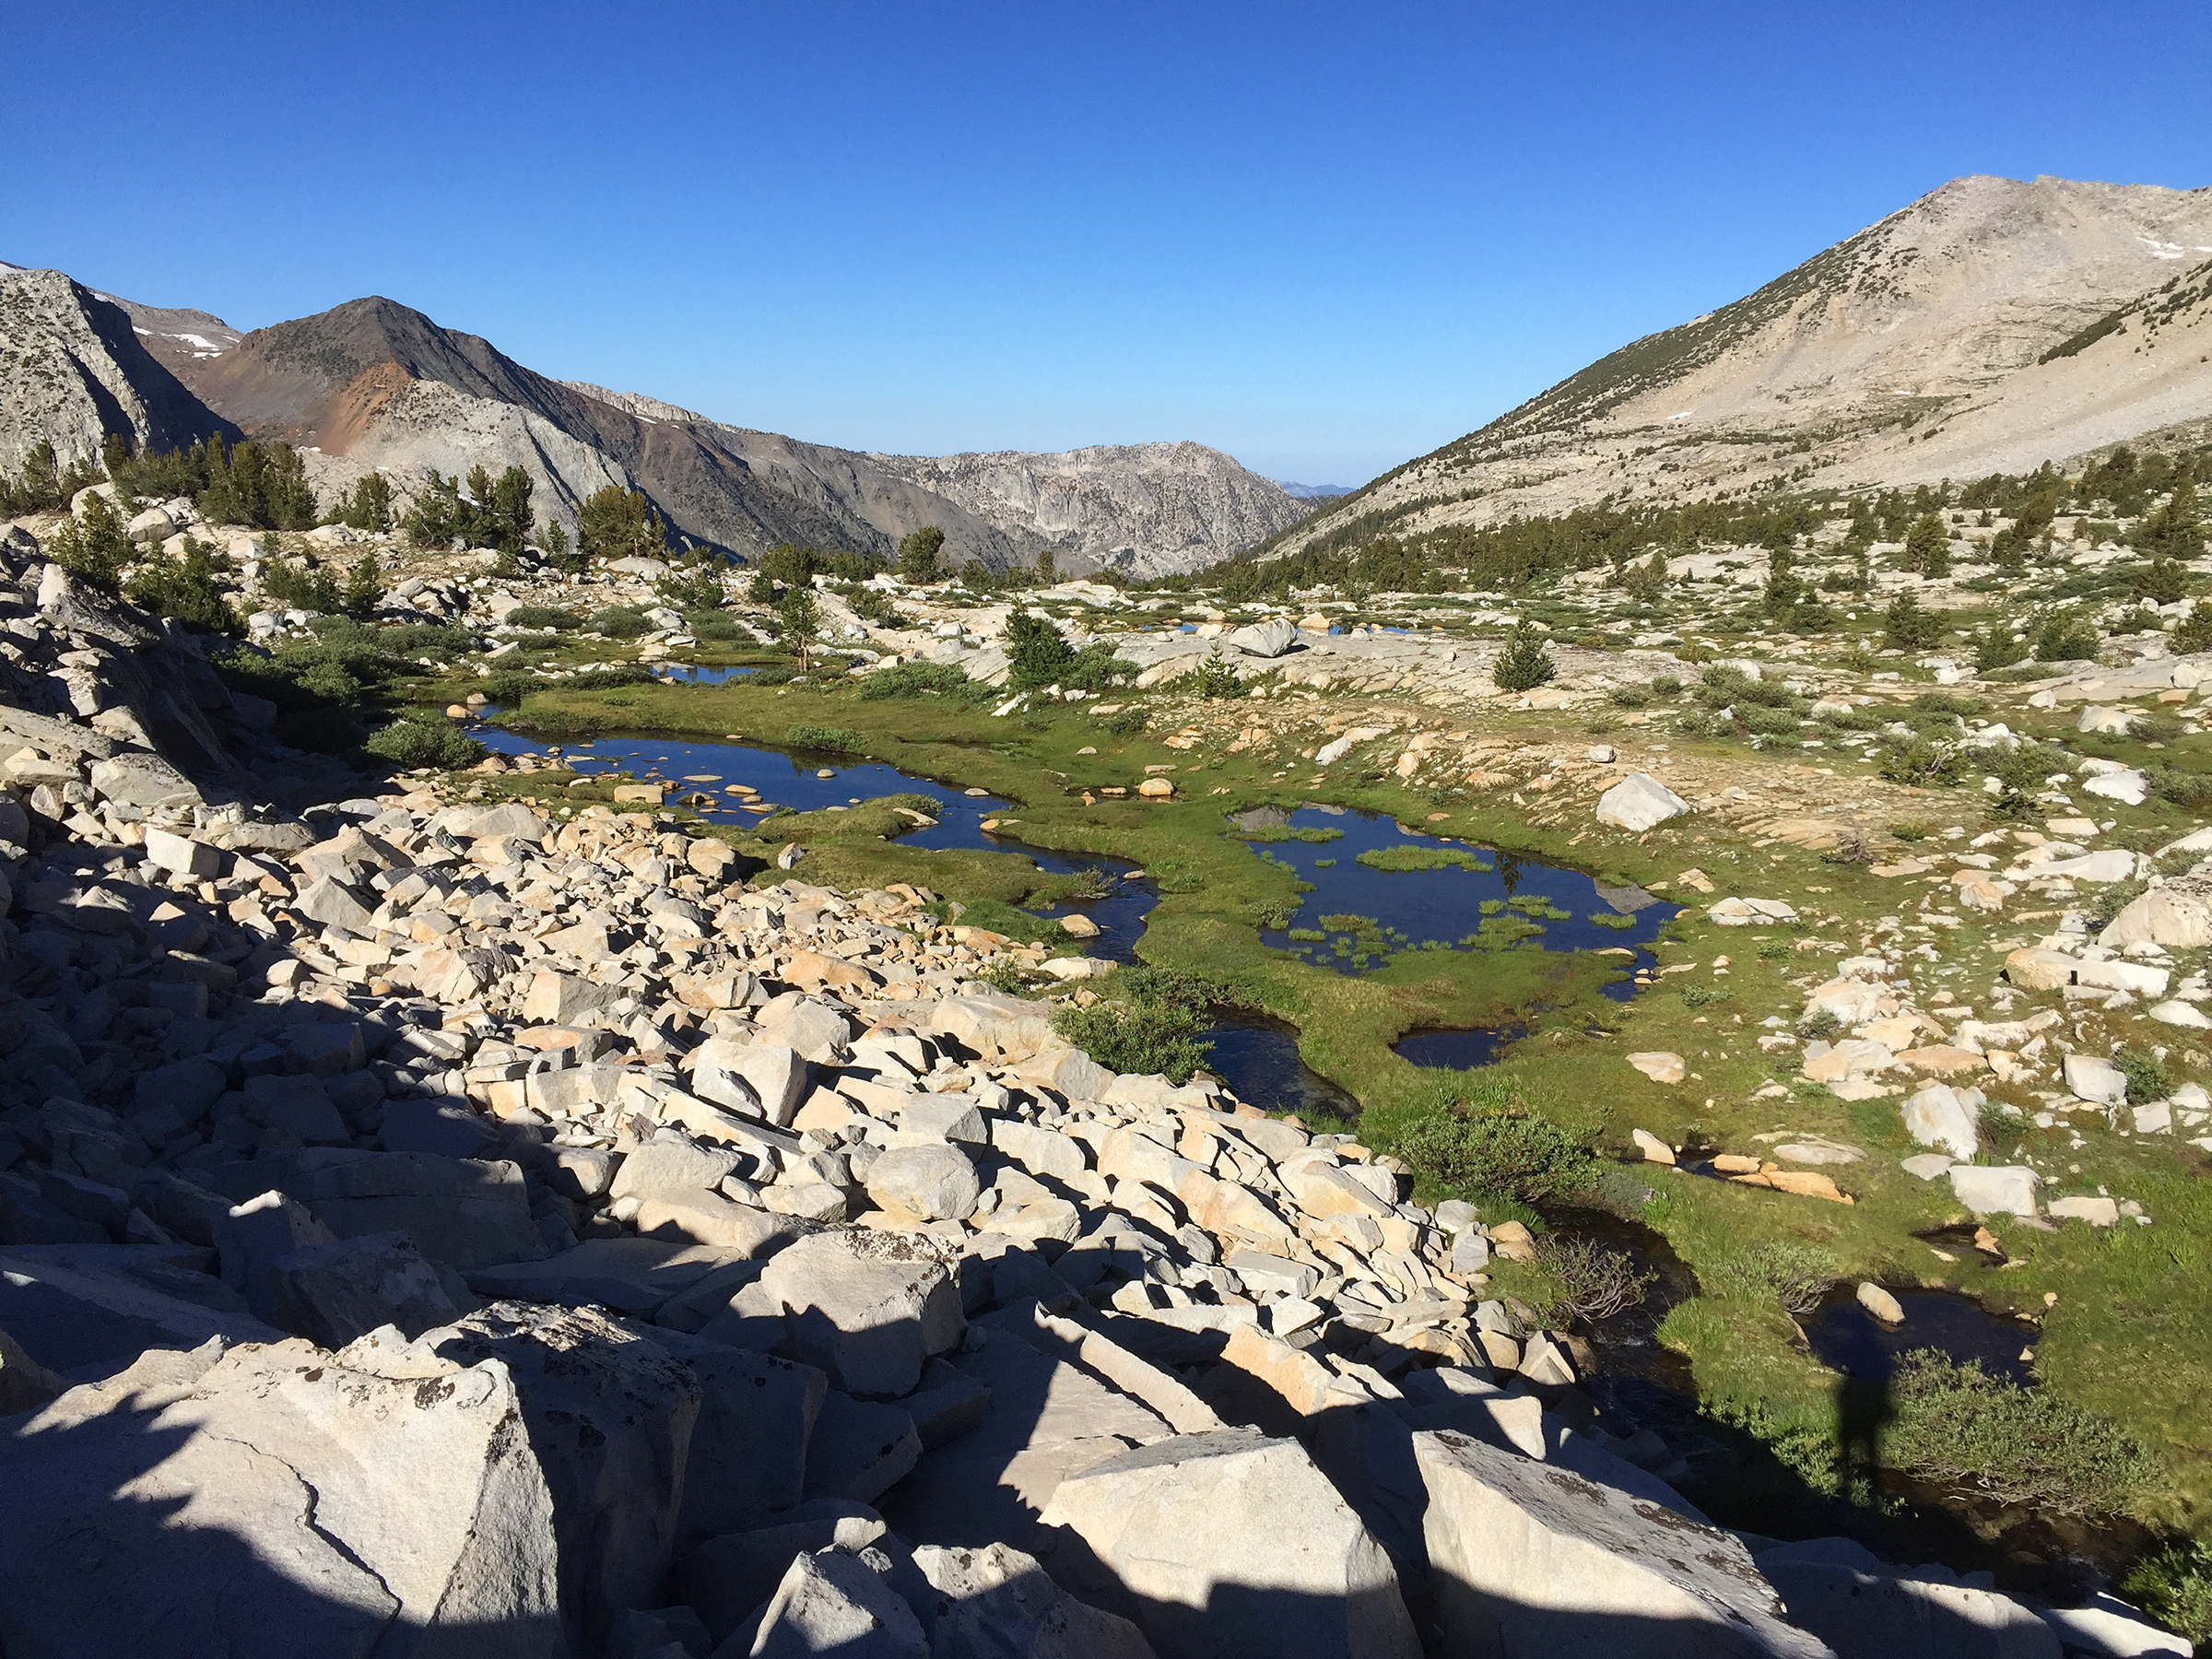 trailname-backstroke-sierra-high-route-2017_0970.jpg